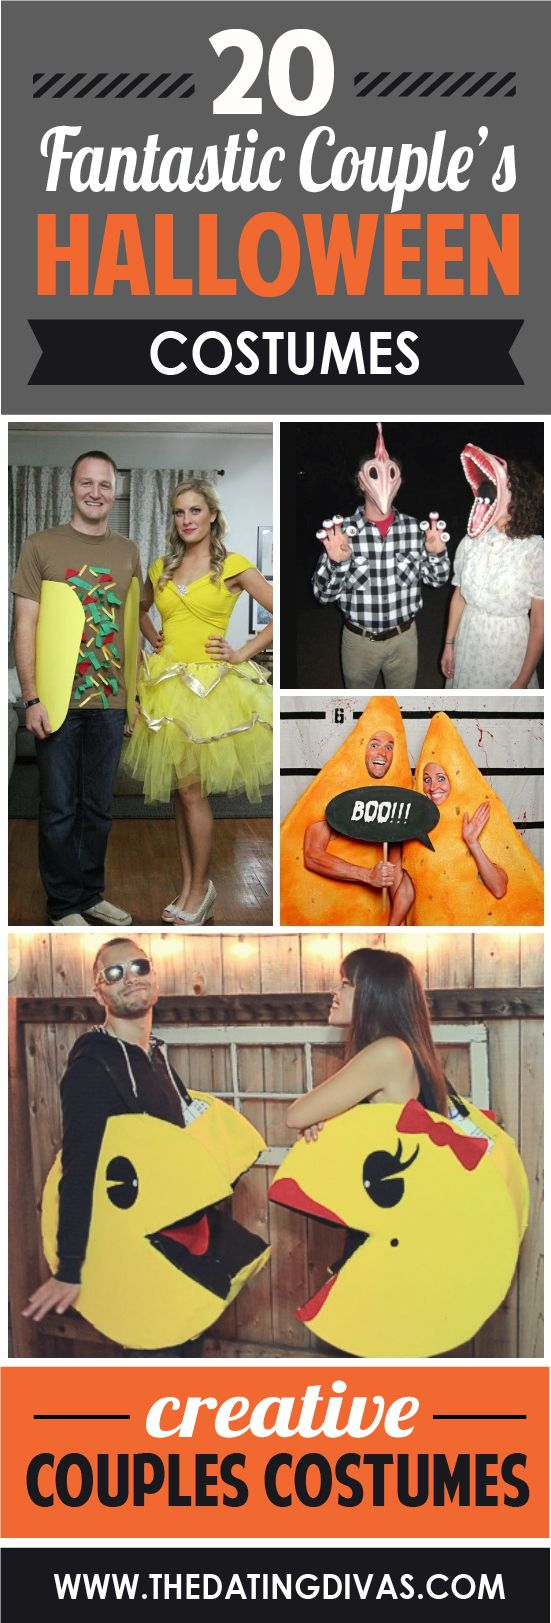 These costume ideas for couples is just what I need this year! www.TheDatingDivas.com